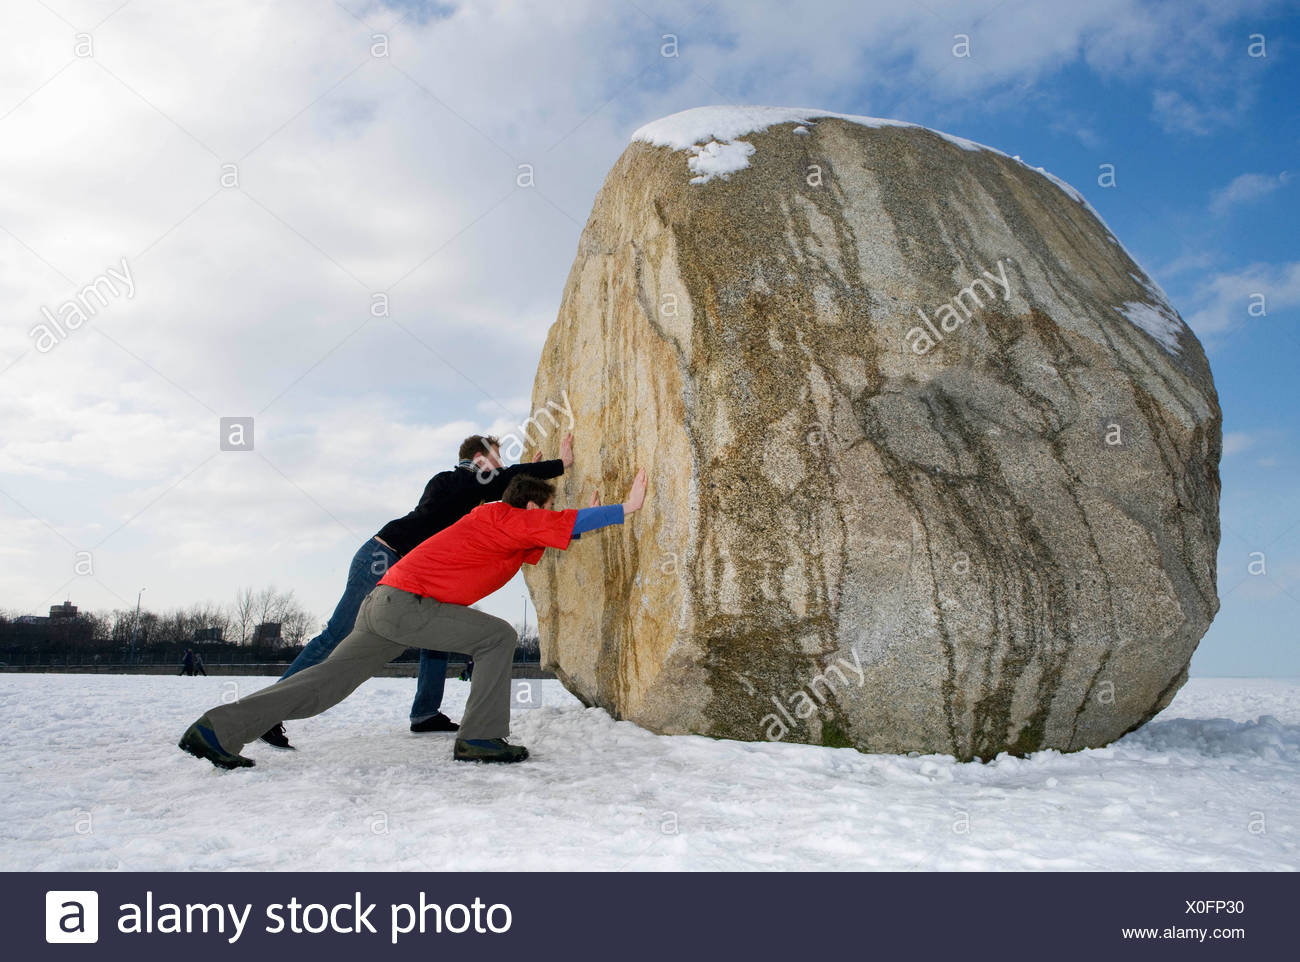 2 men pushing massive boulder - Stock Image